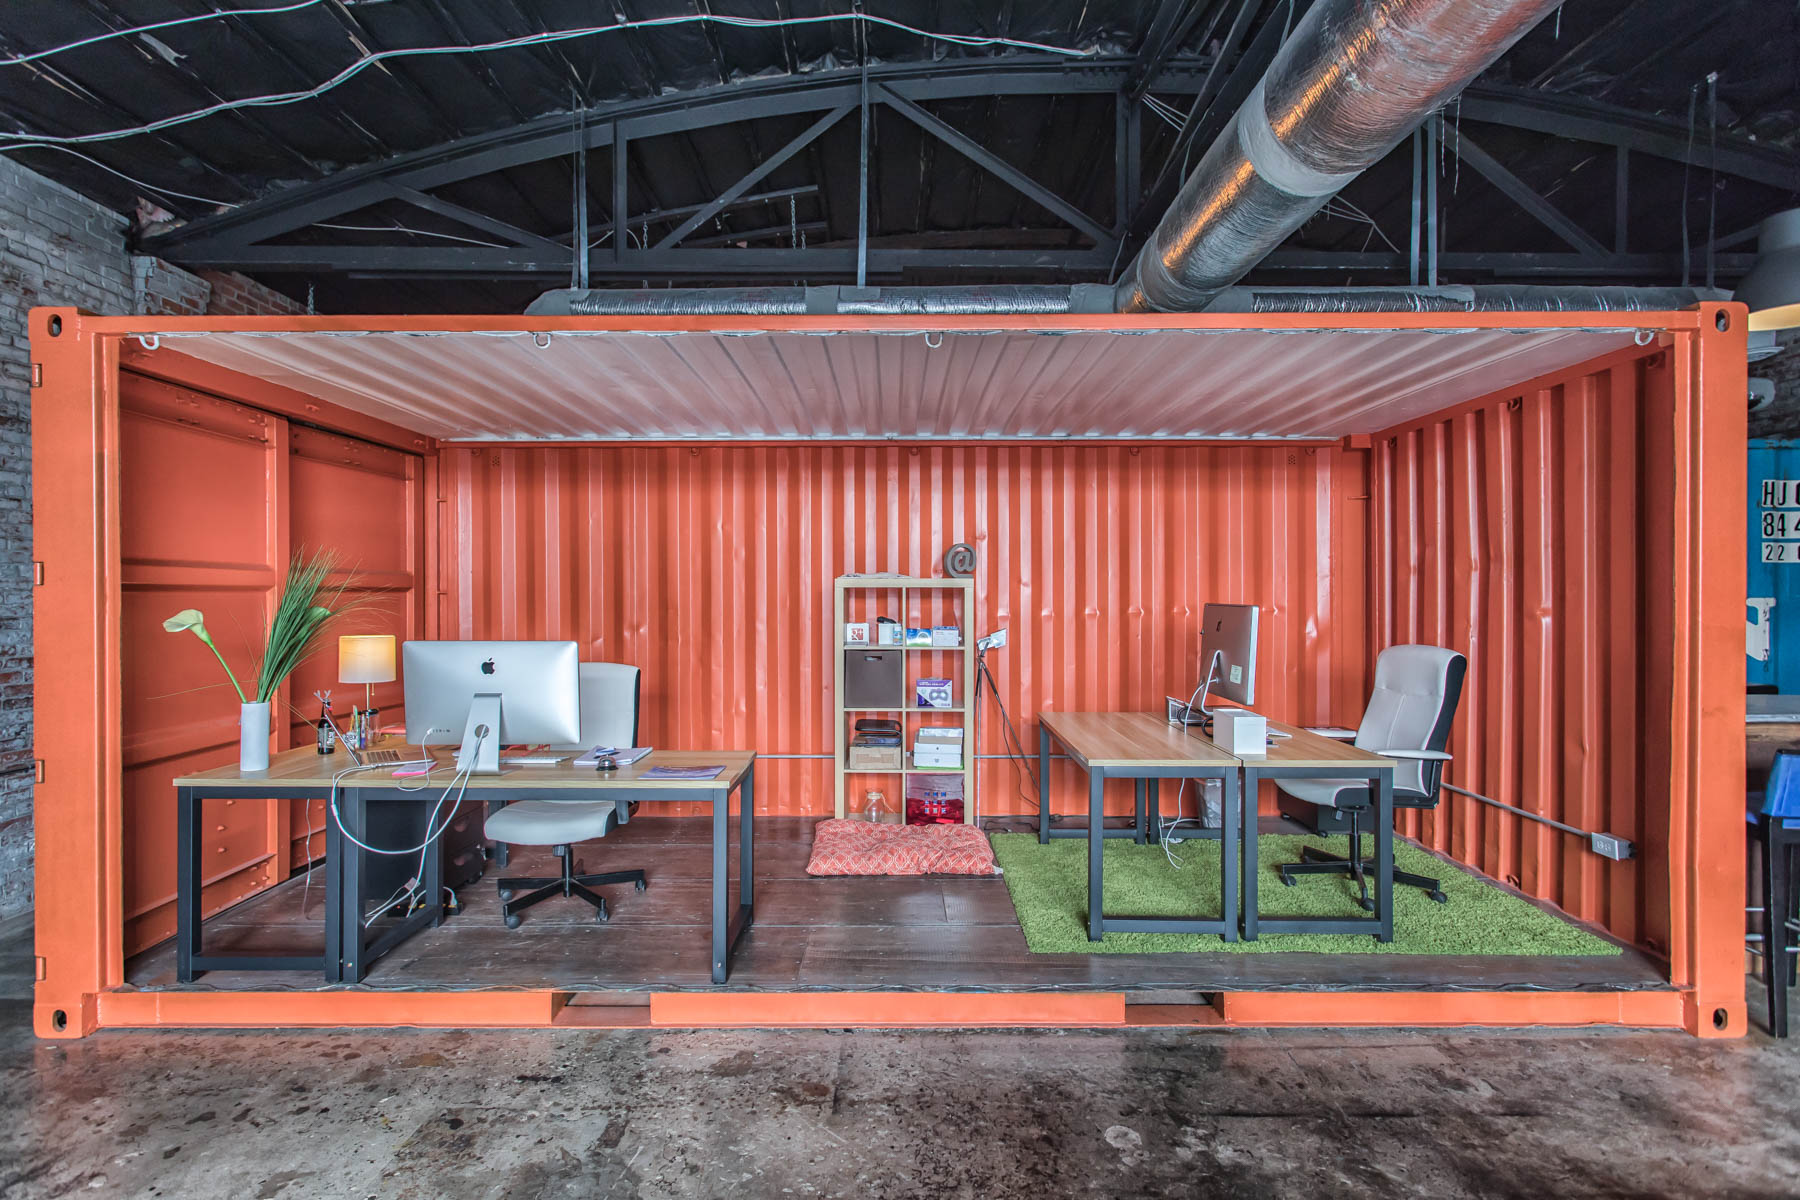 Connect at Coworx - Our collaborative coworking space is located within Wilmington's newest urban market and work village, The Cargo District.